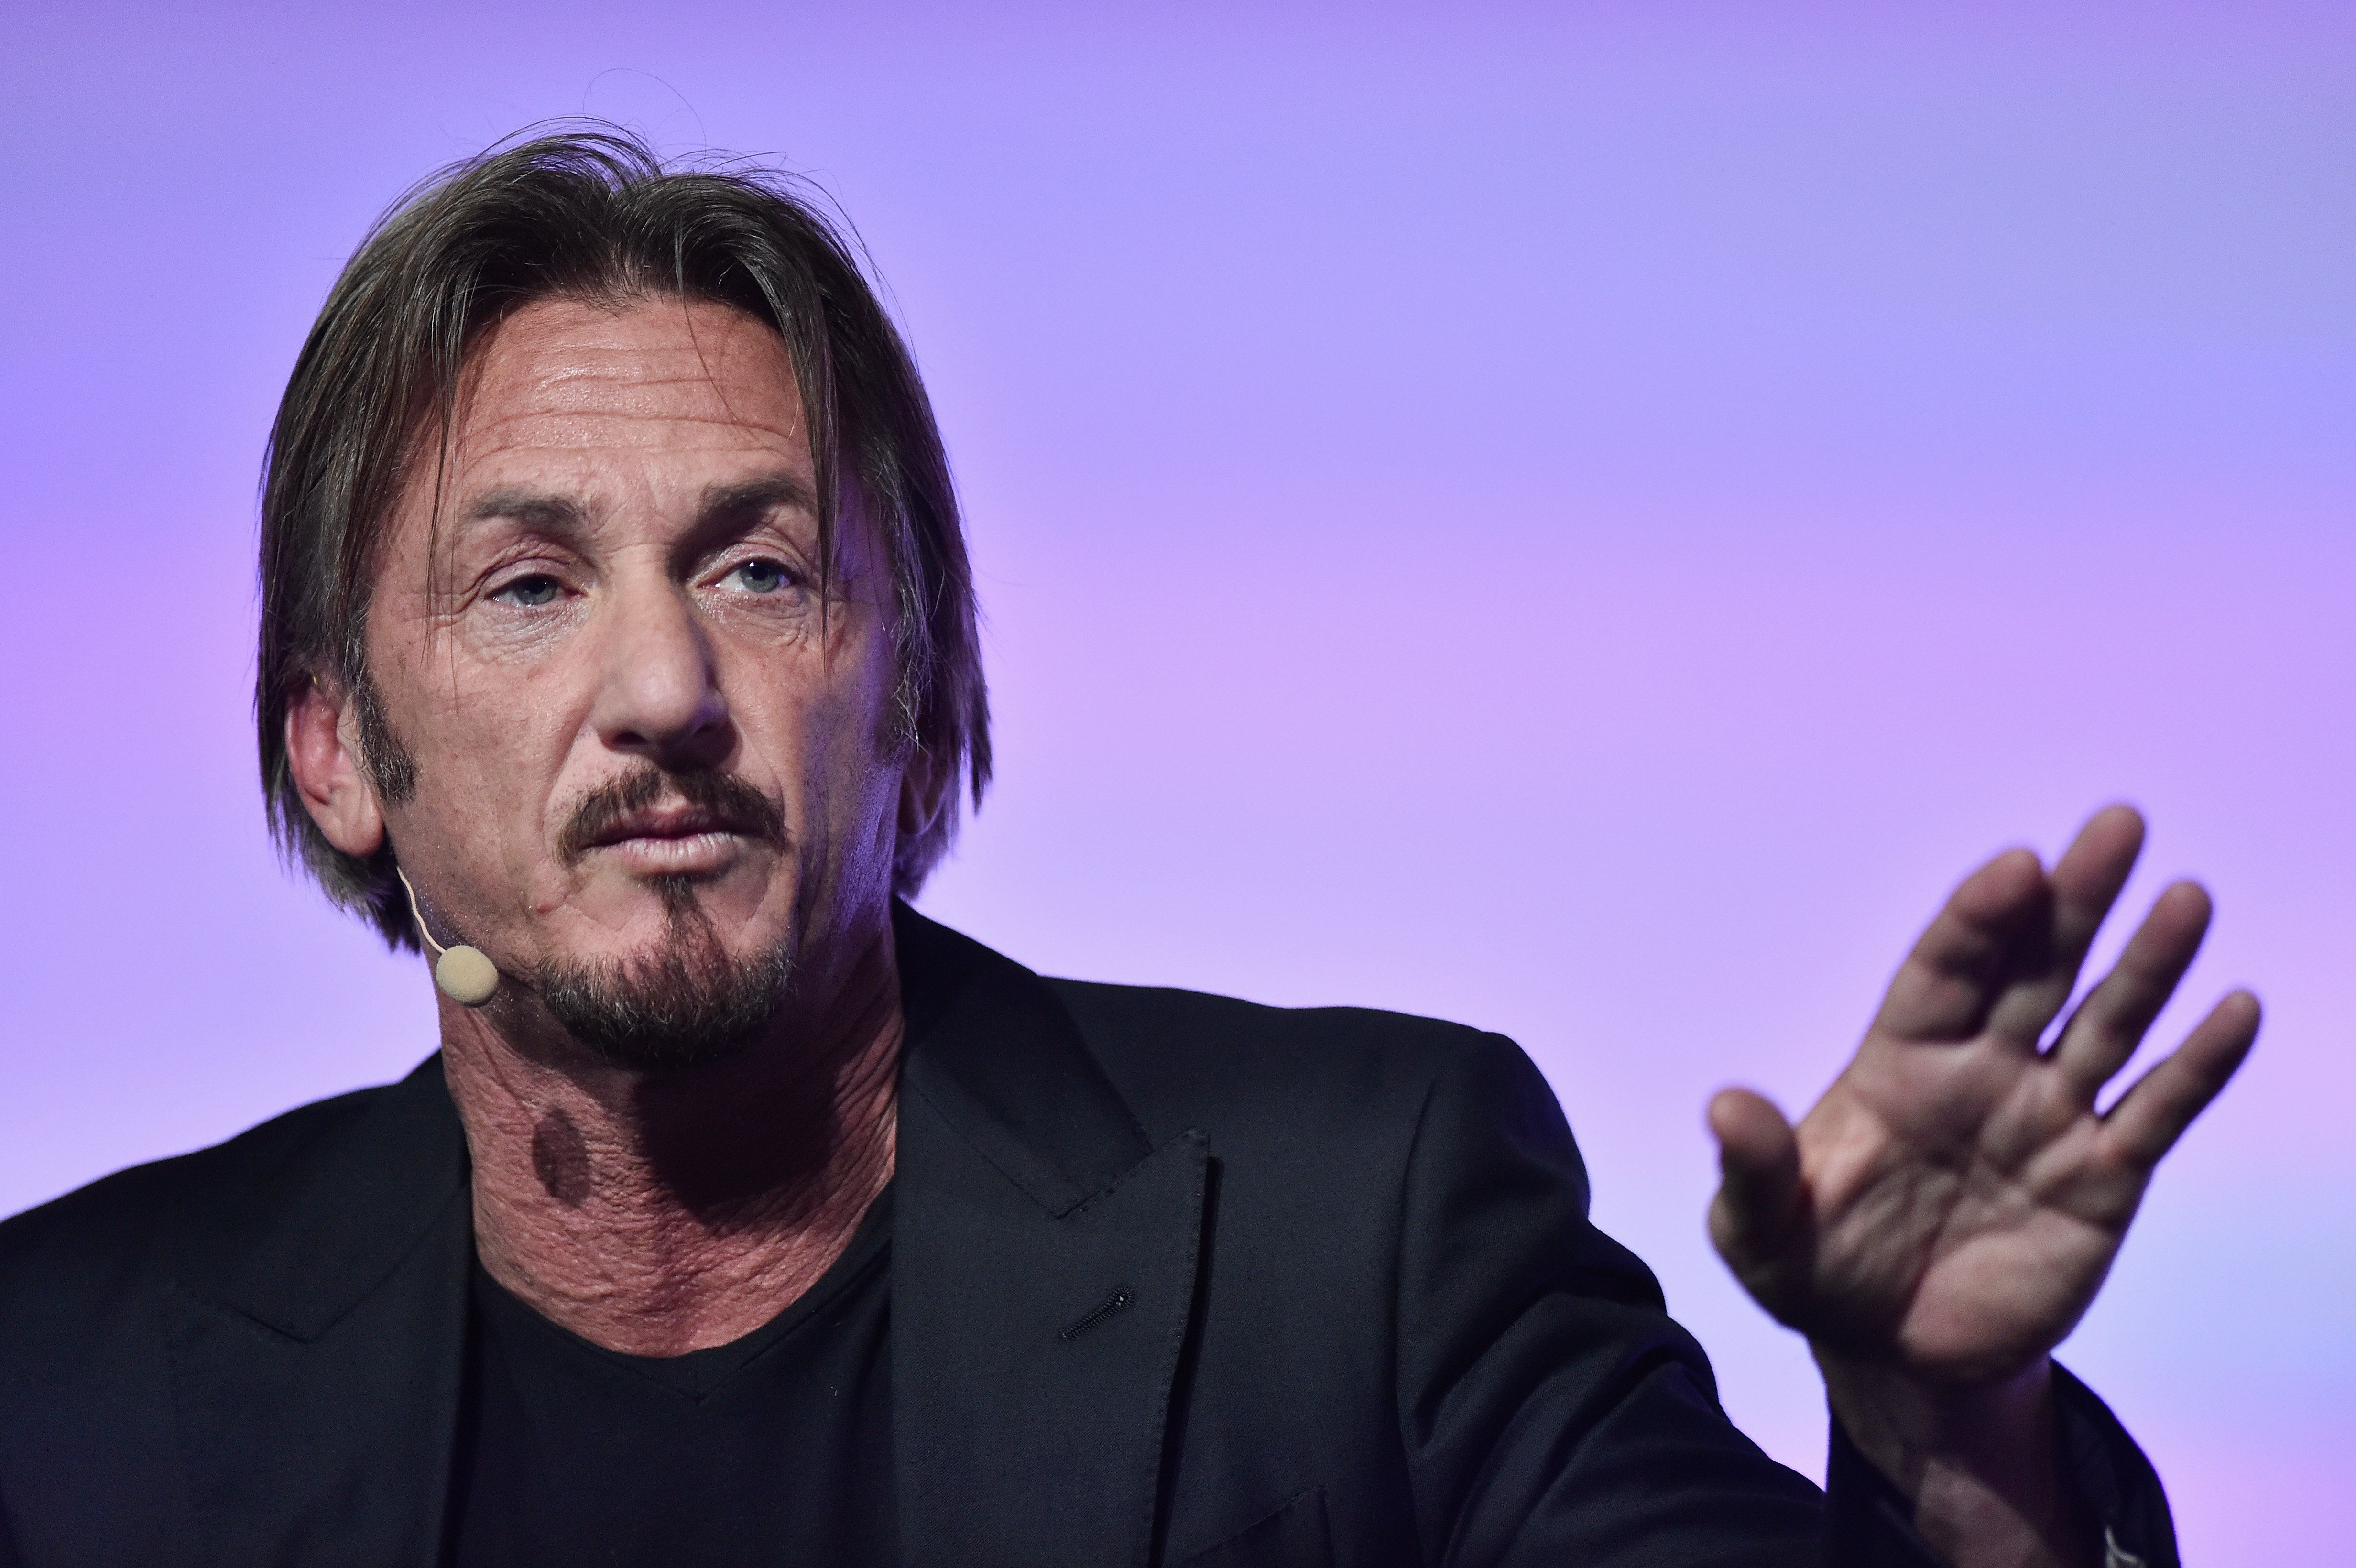 PARIS, FRANCE - DECEMBER 05:  Actor Sean Penn makes a speech for the Action Day during the 21st Session Of Conference On Climate Change on December 5, 2015 in Paris, France.  He is invited as the founder of the J/P Haitian Relief Organization.  (Photo by Pascal Le Segretain/Getty Images)